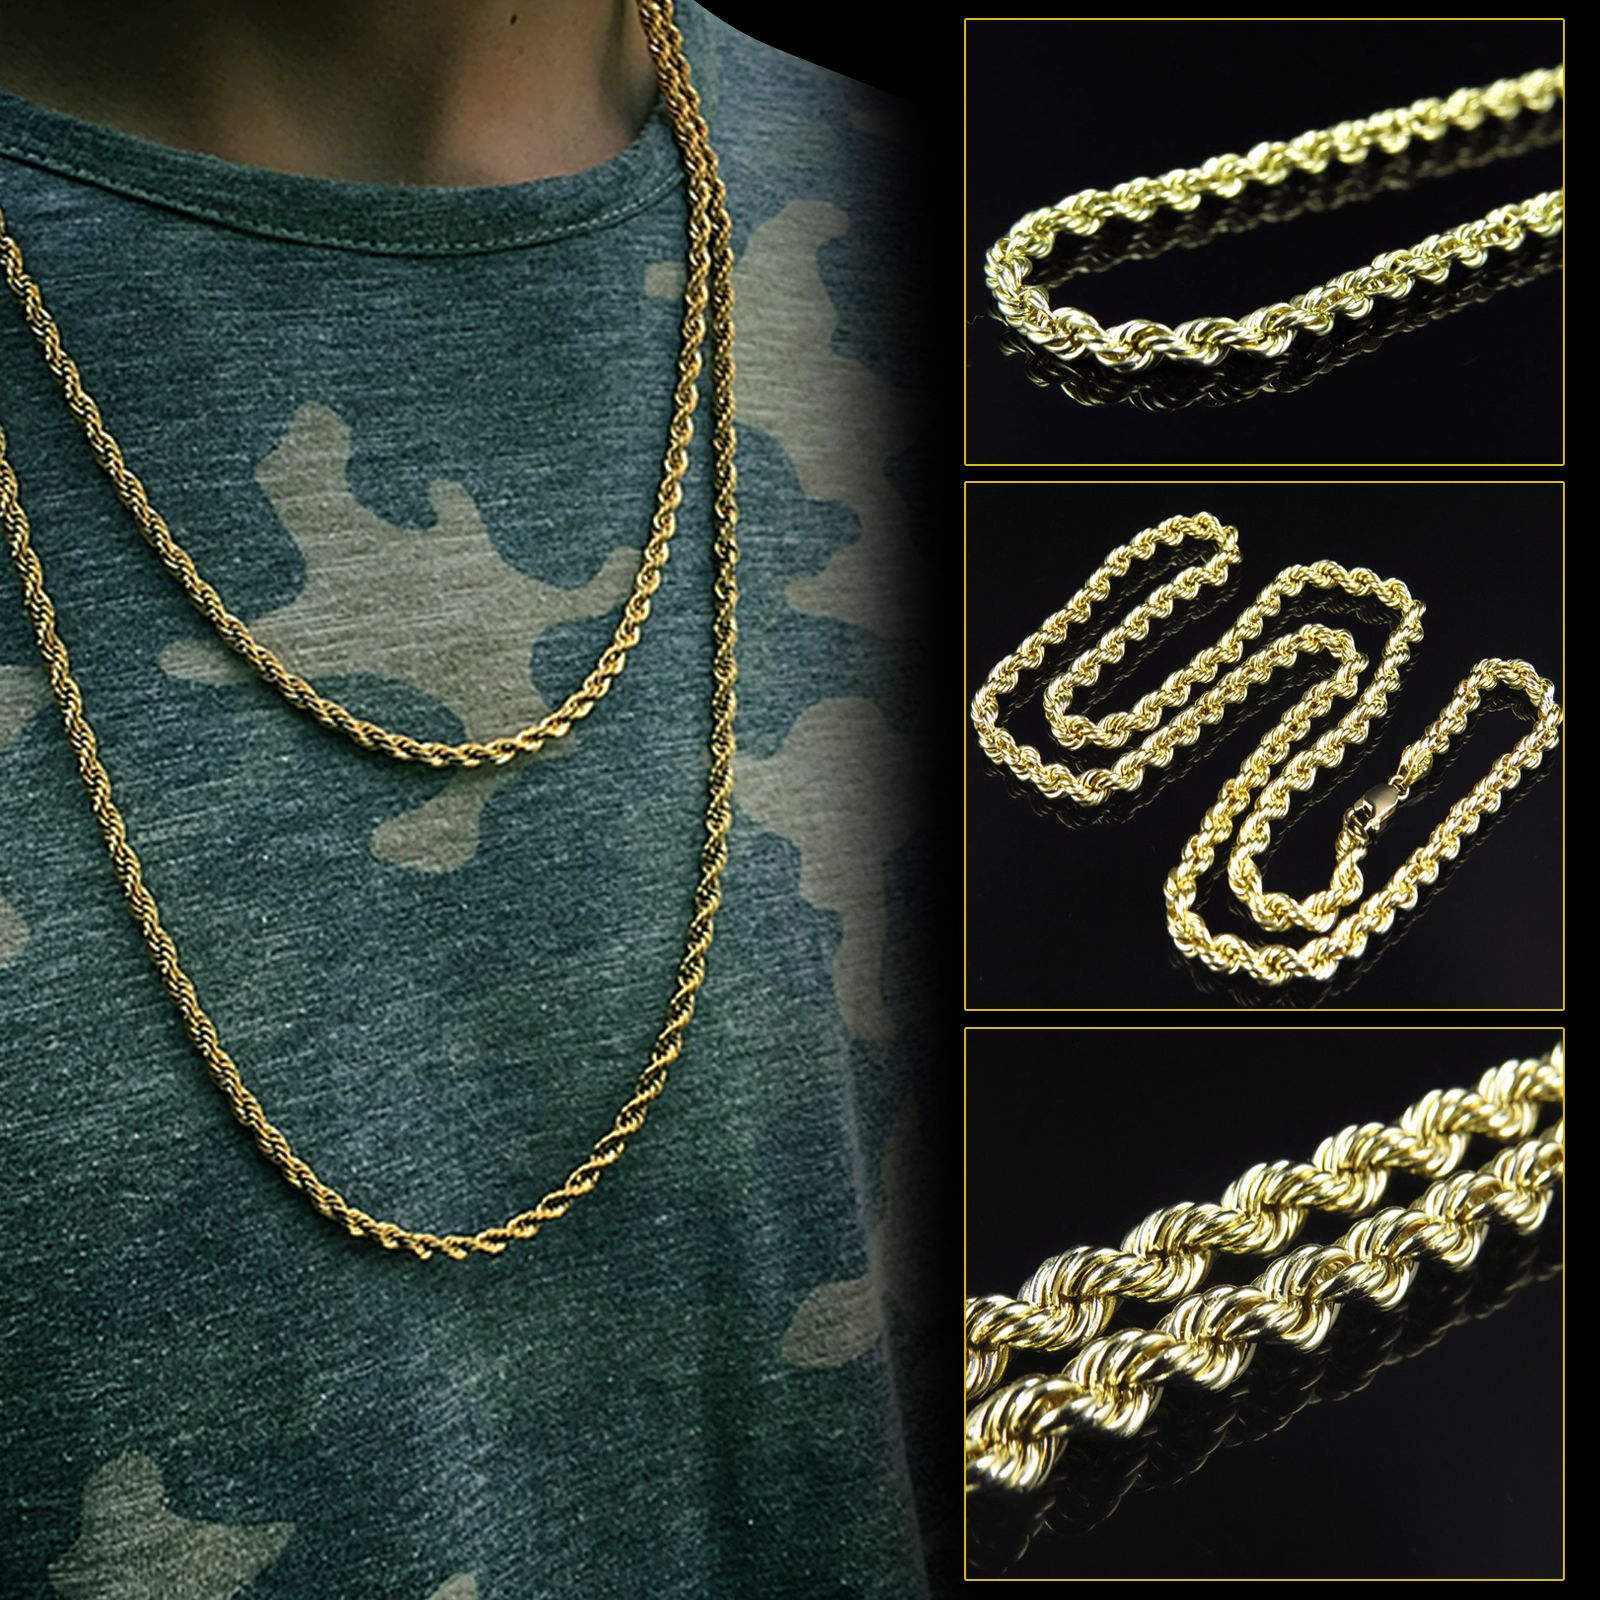 10k Yellow Gold 5mm Hollow Rope Chain Necklace Rope Chain Chain Chain Necklace